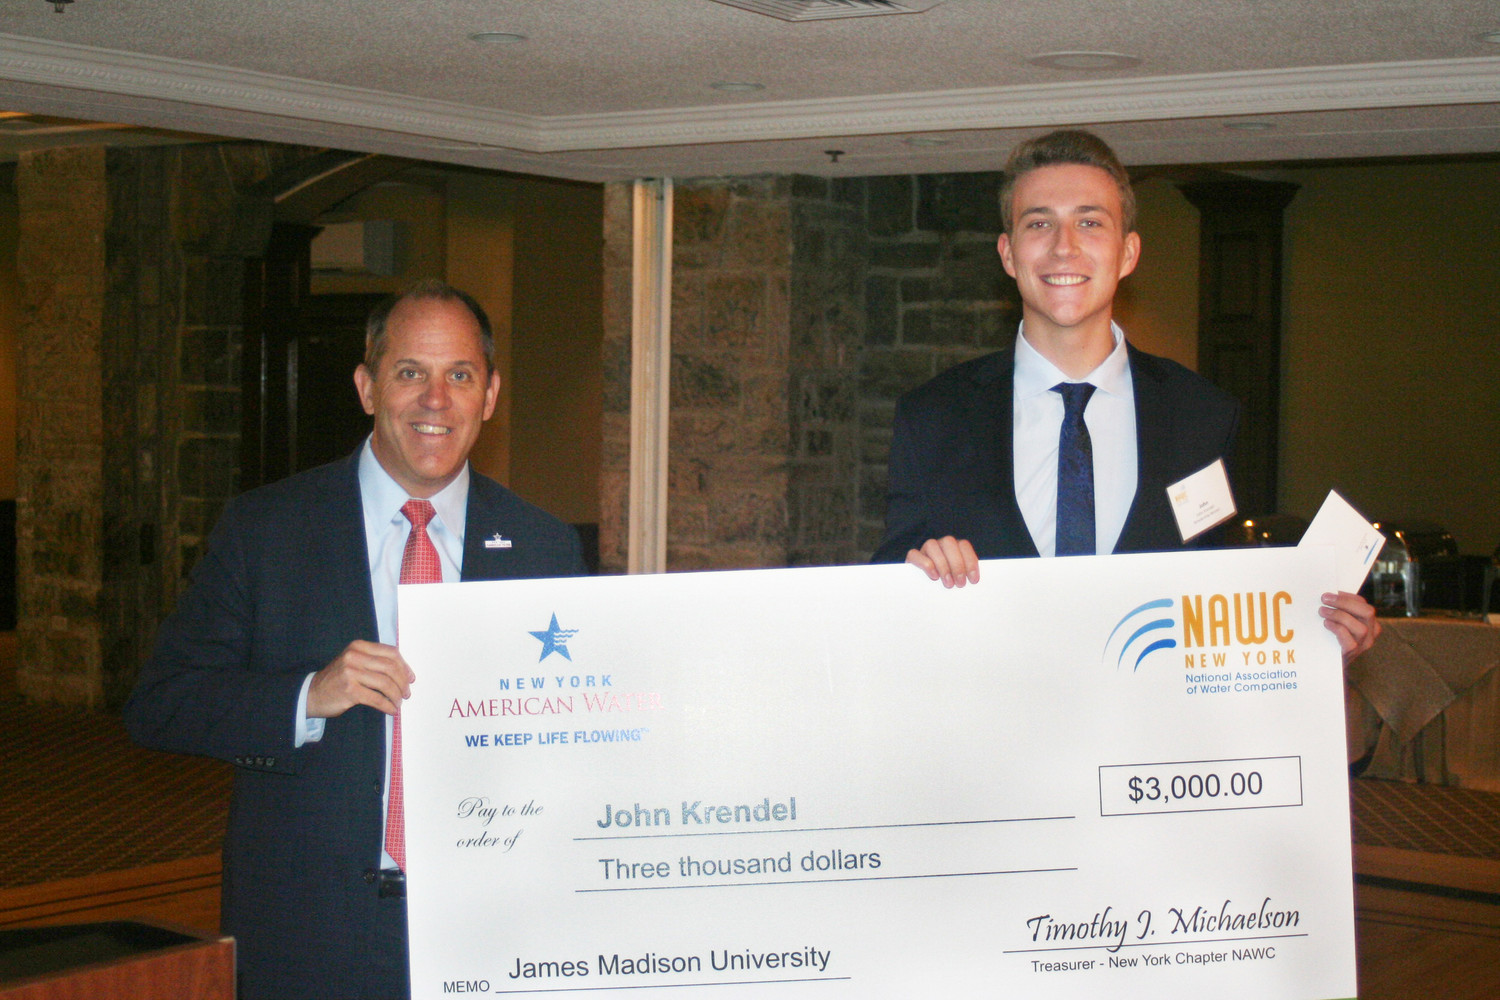 Lynbrook graduate John Krendel, right, recently received a $3,000 scholarship from New York American Water President Carmen Tierno.